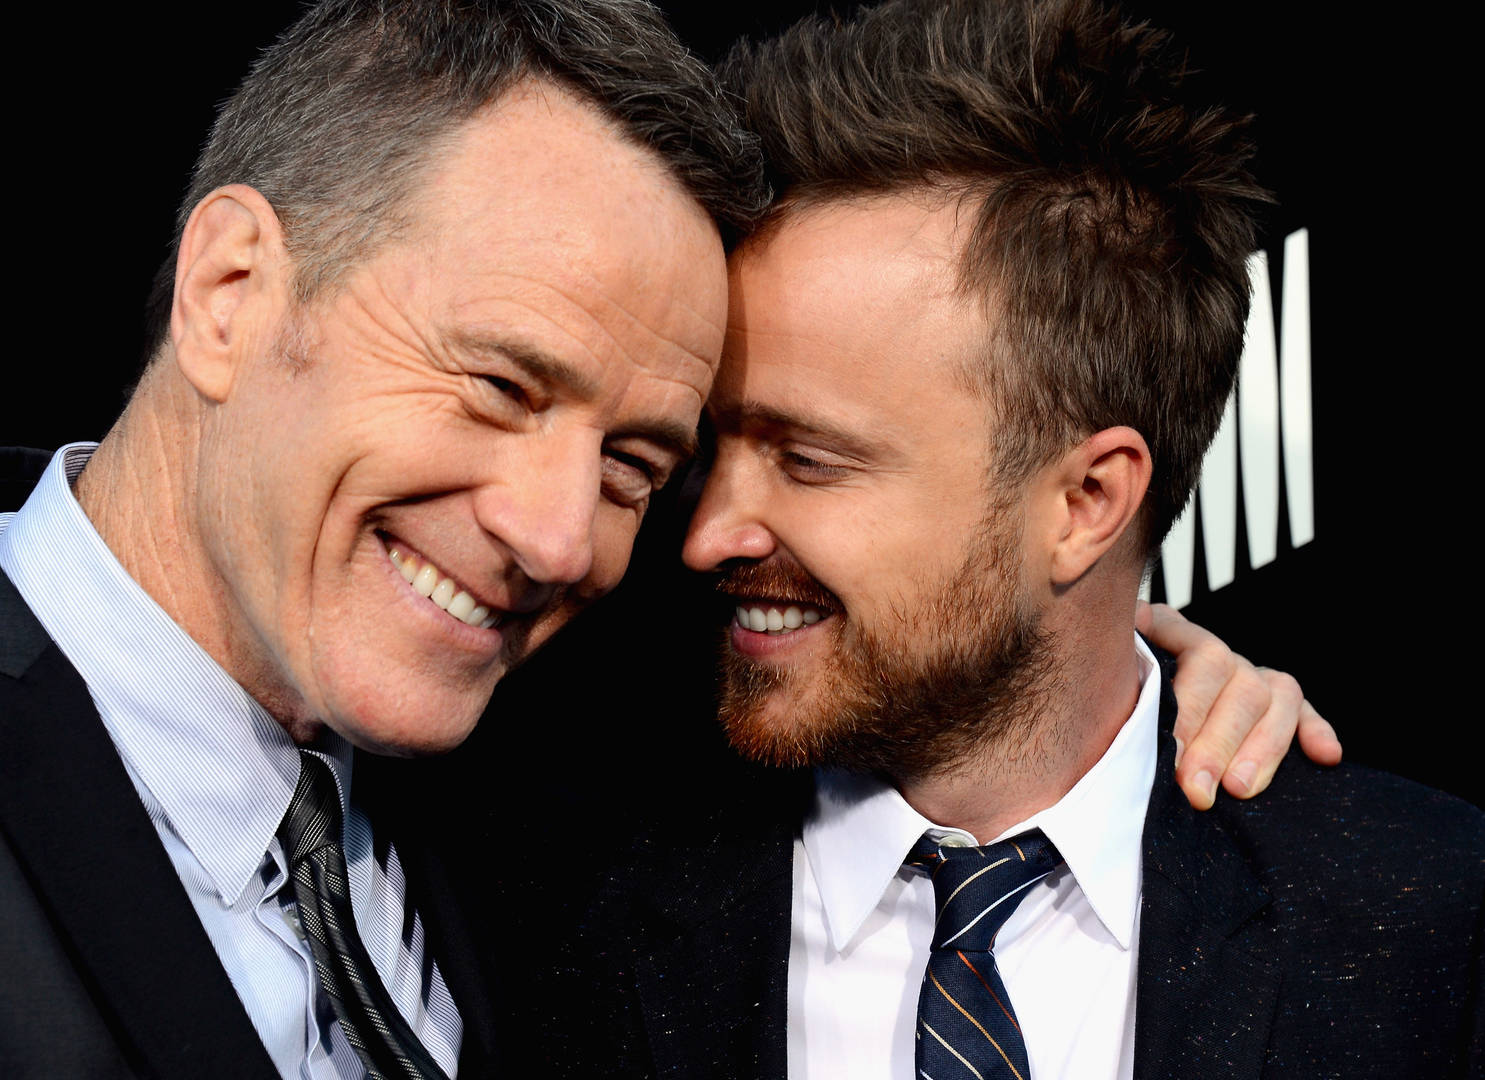 'Breaking Bad' fans livid over Bryan Cranston and Aaron Paul's new collab